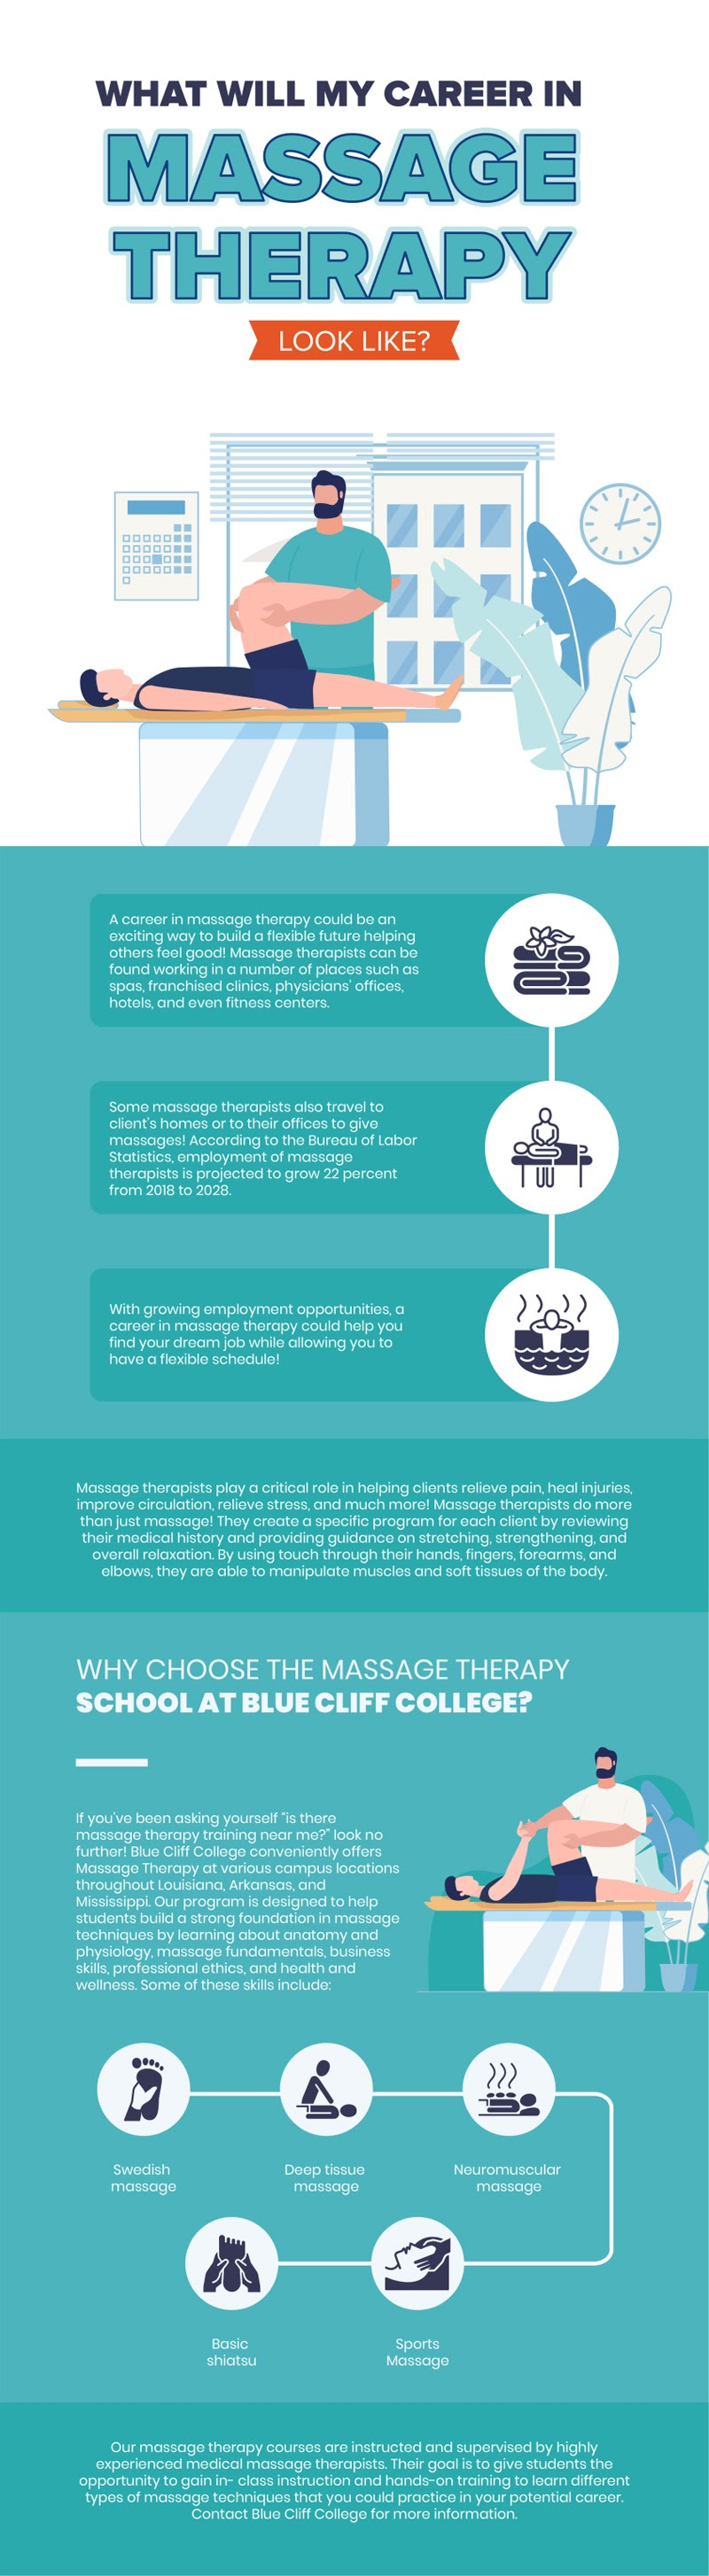 What Will My Career in Massage Therapy Look Like #infographic